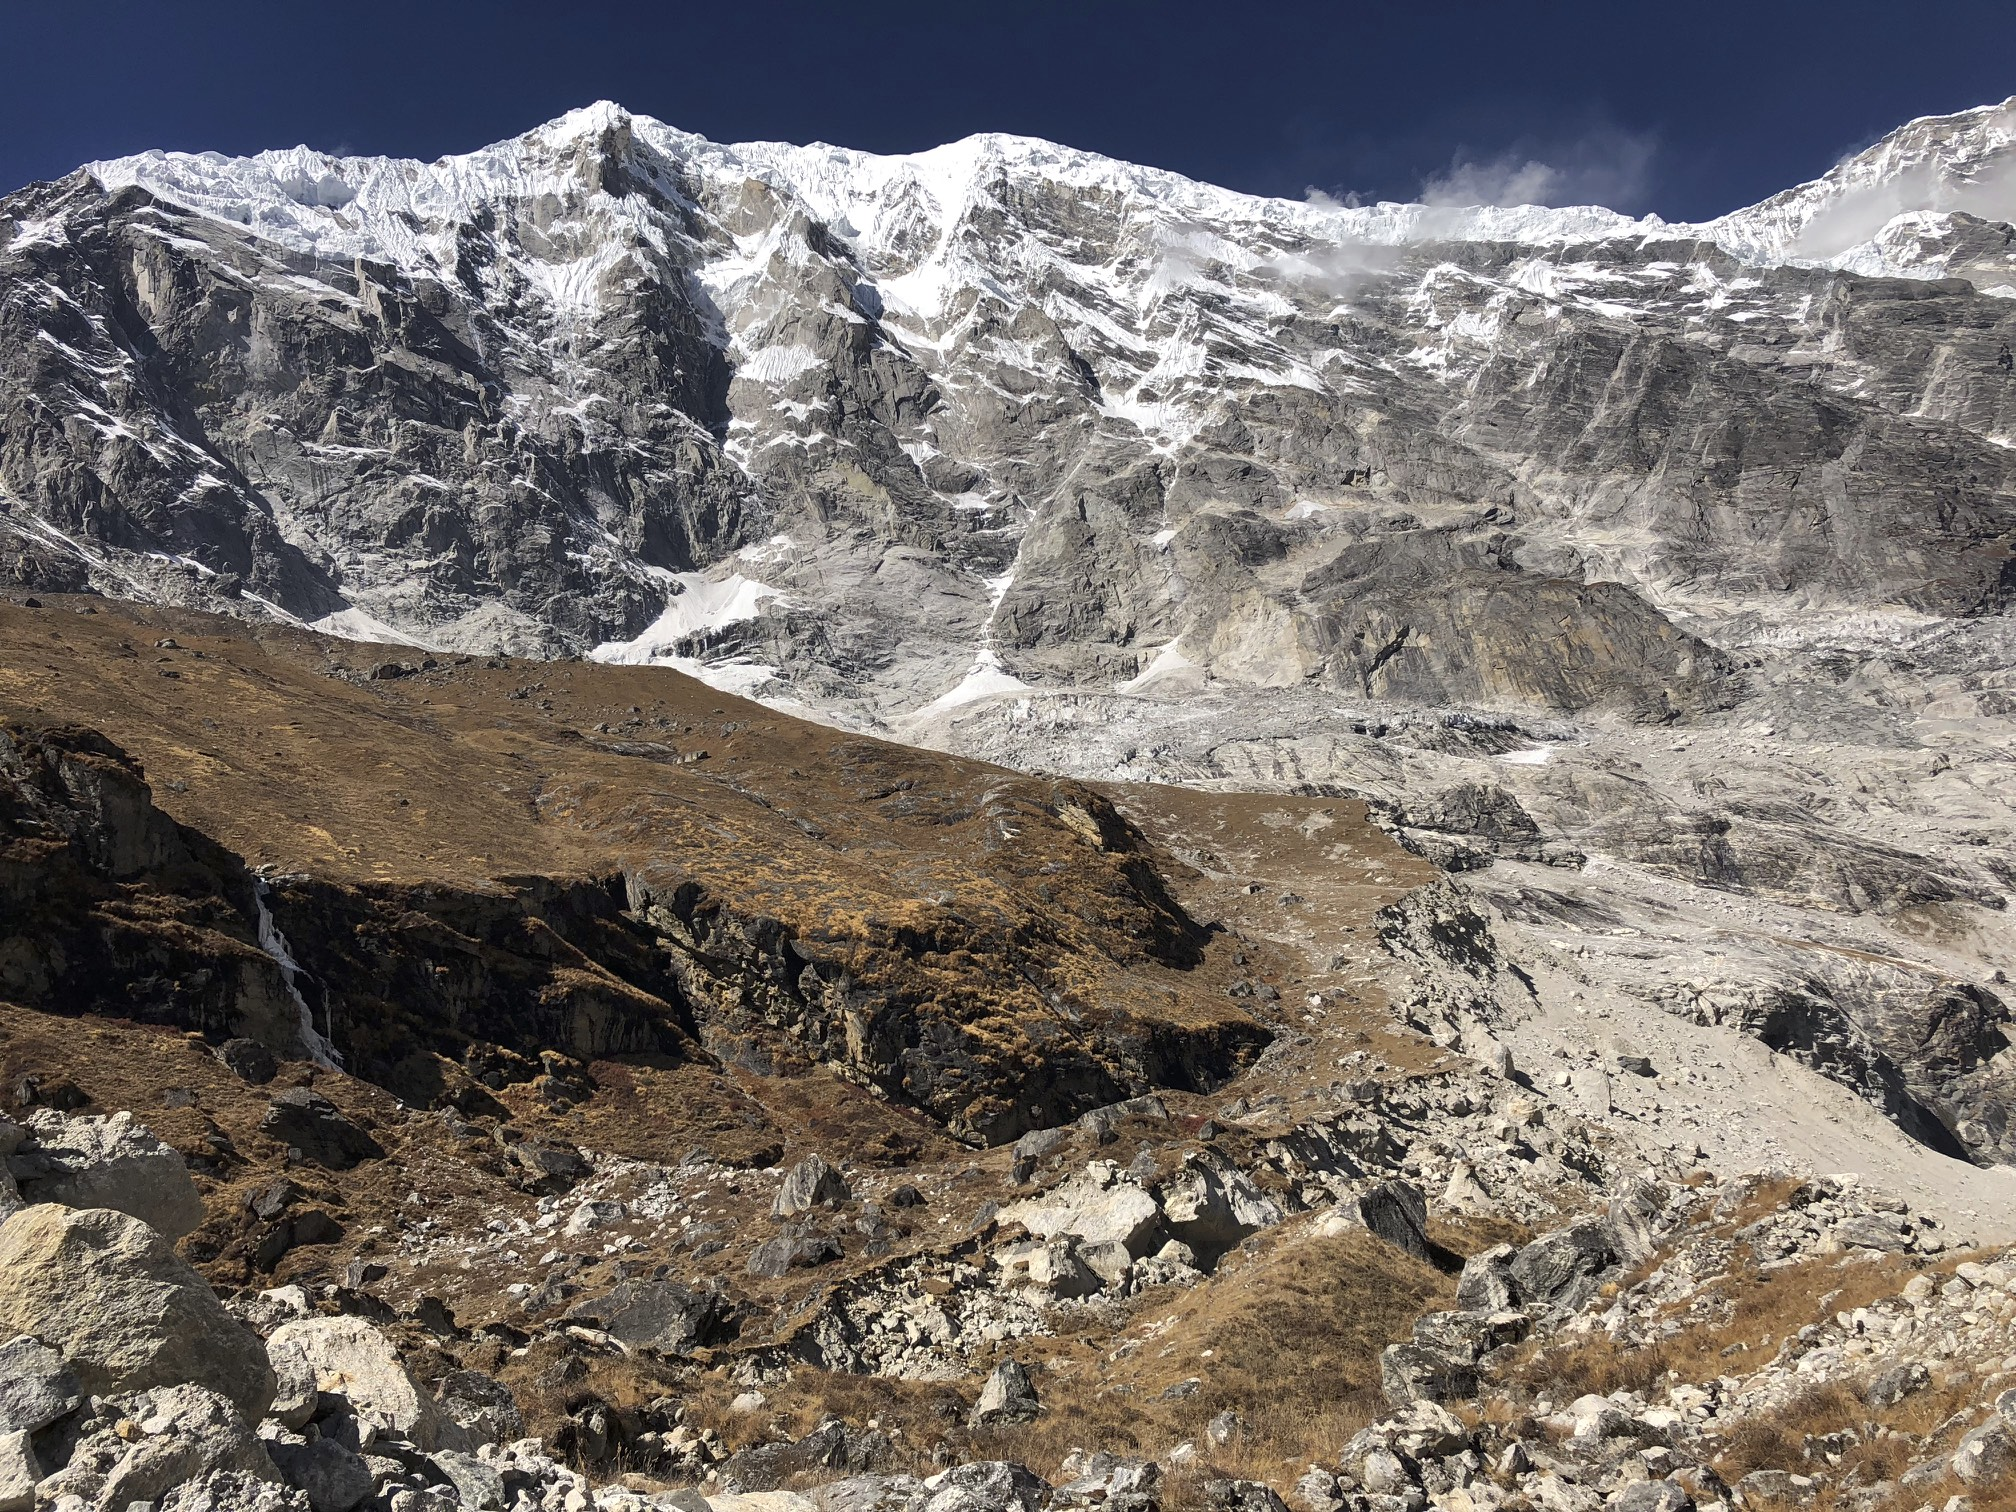 Langtang Lirung looming over the basecamp